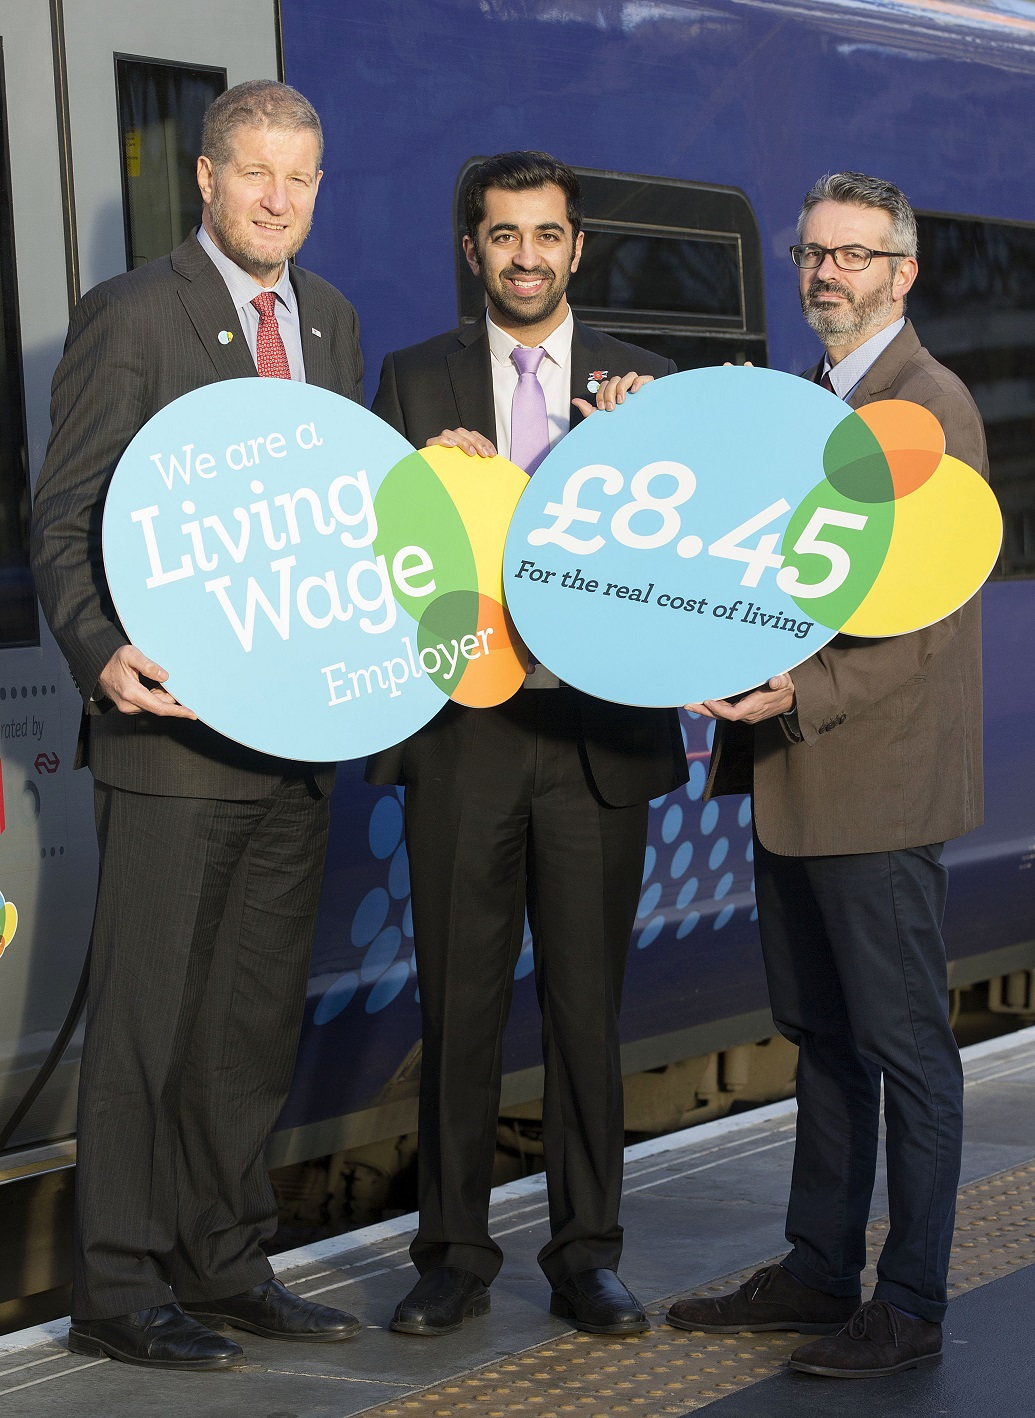 01/11/16 - 16110101 - ABELLIO SCOTRAIL    GLASGOW     (L-R) Managing Director Scotrail Alliance Phil Verster, Minister for Transport and Islands Humza Yousaf and Director of Poverty Alliance Peter Kelly